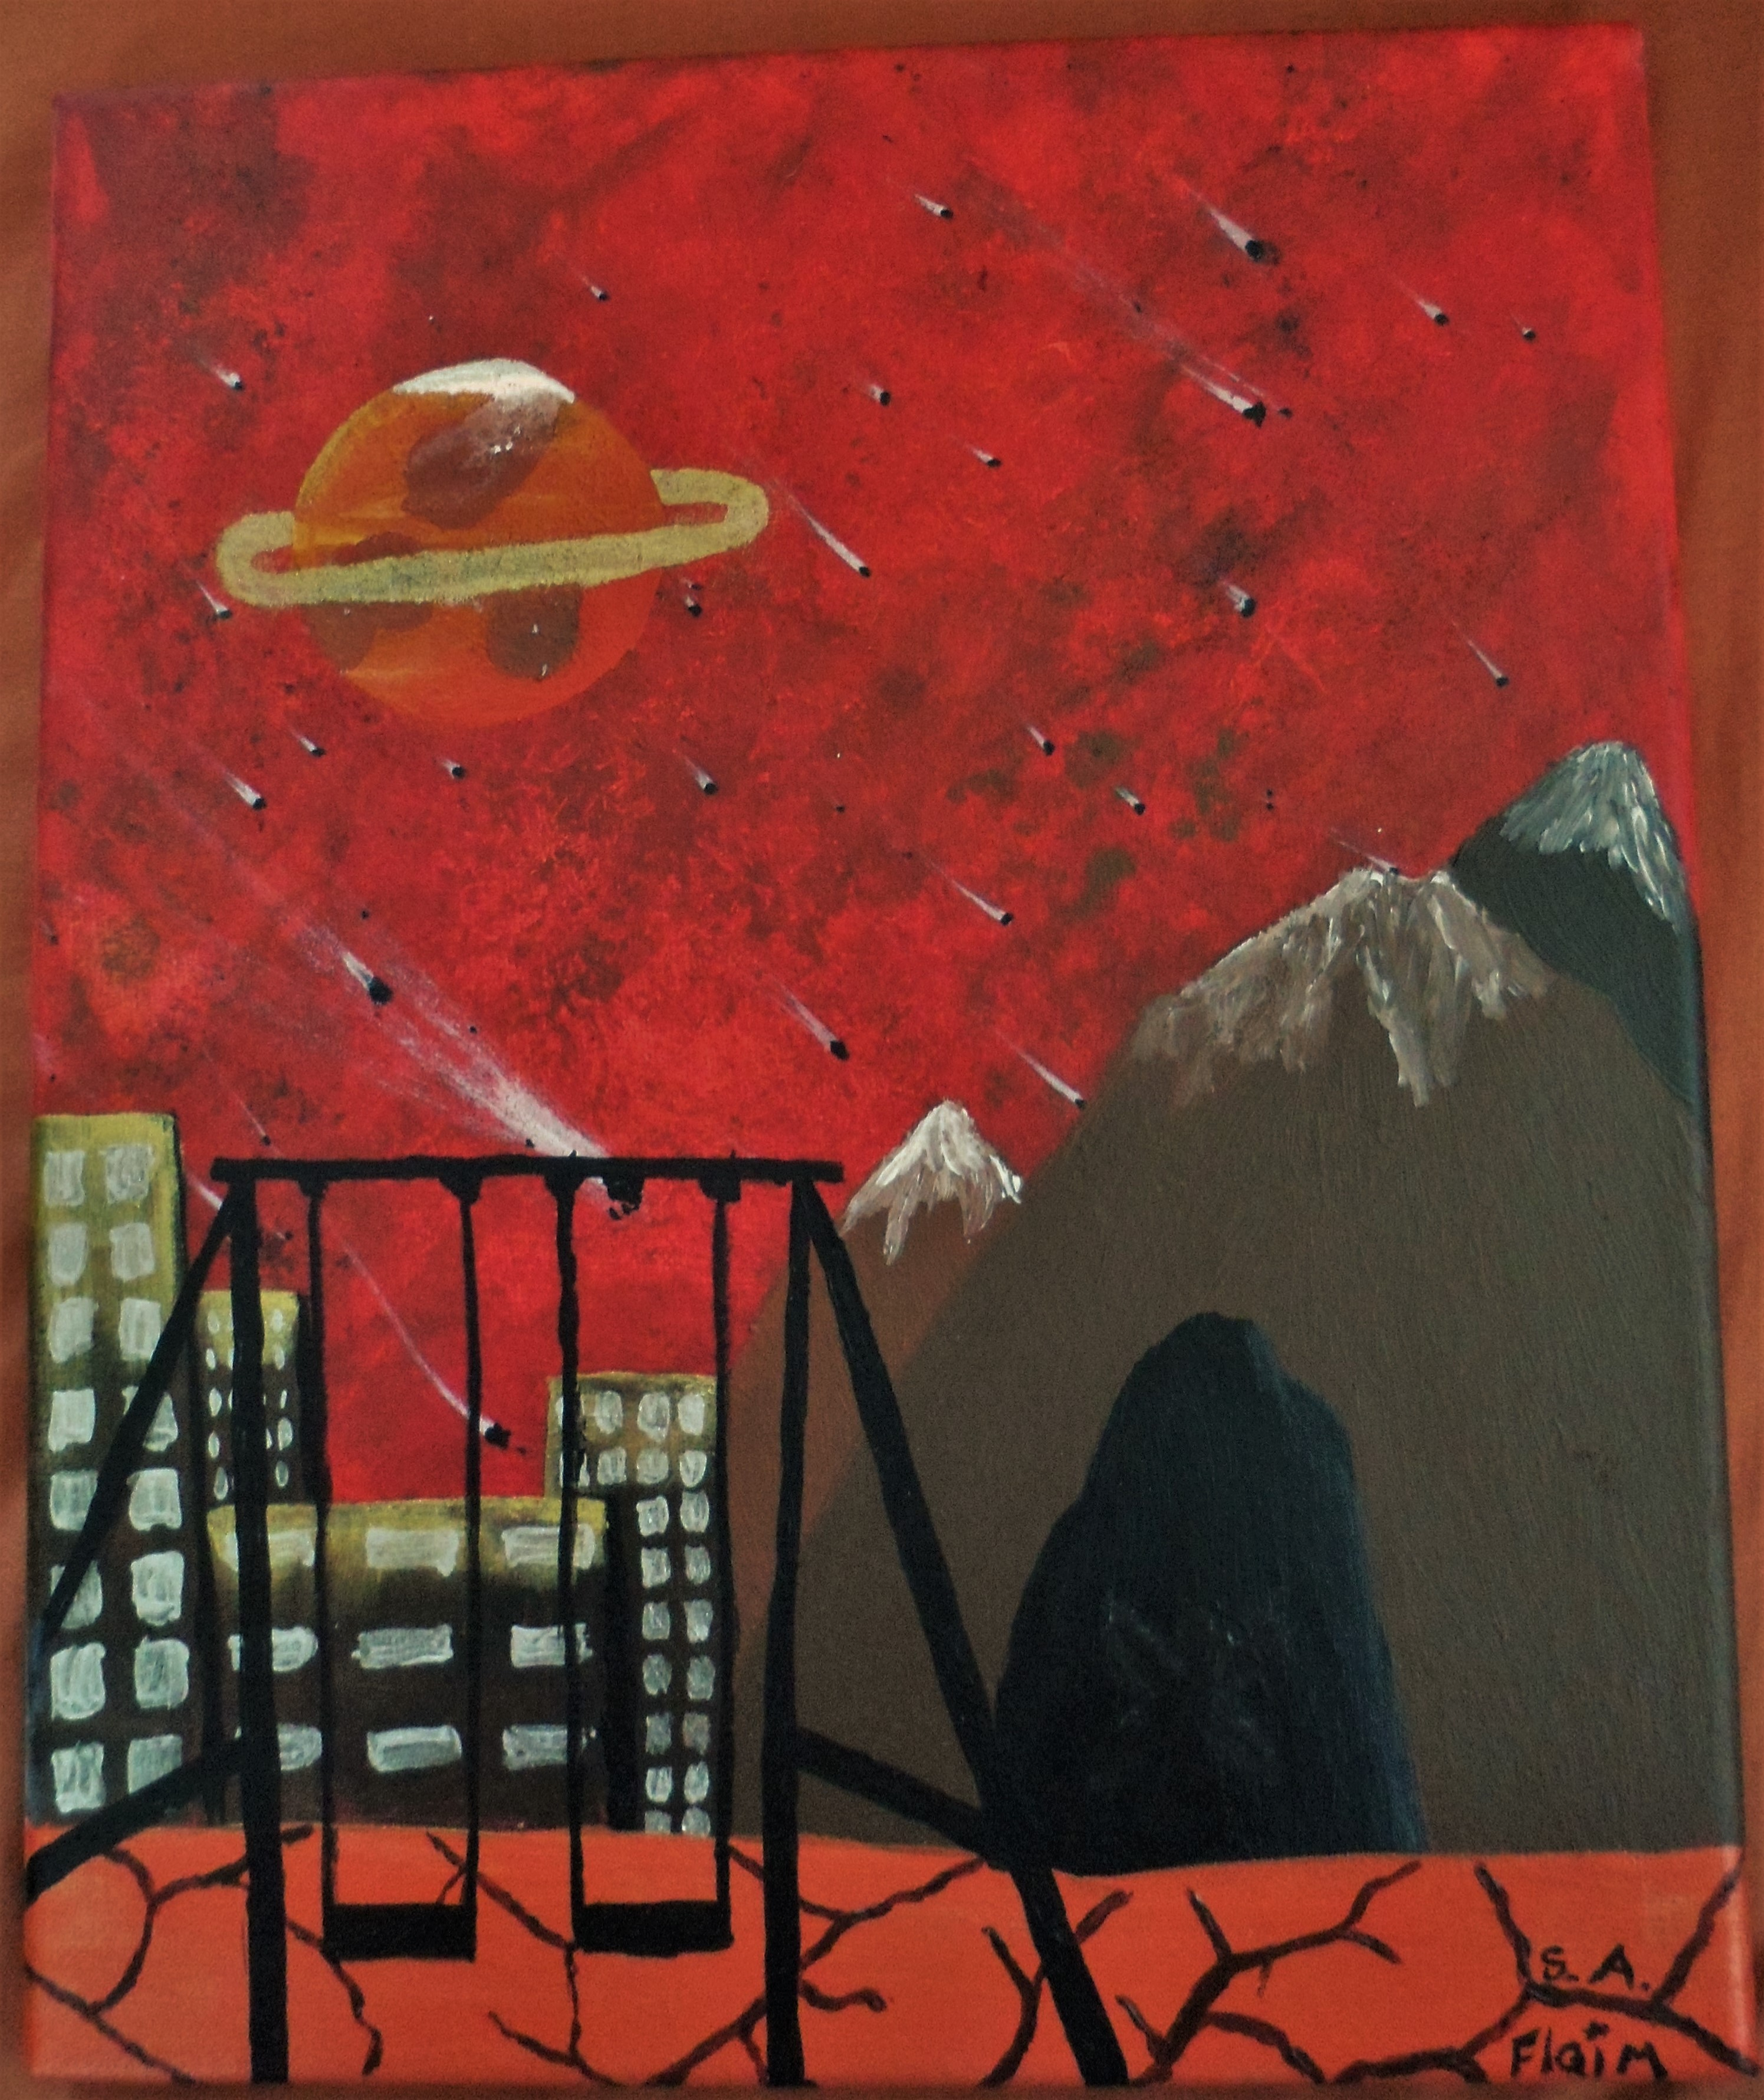 """""""The painting is called """"Playground at the end of the world"""" and is by S. A. Flaim (pronounced like 'flame'). It is in portrait and shows a burning red smokey sky filled with a meteor shower. In the top left there is a mysterious orange planet with a gold ring around it. To the right there are 3 large brown snow topped mountains the closest of which has an enormous cave with just a hint of a figure in it, possibly a fairy or Angel? To the left there are 4 abandoned tower blocks of various hights and widths bathed in the golden light of all the destruction around them. What ground that can be seen, is flowing with cracking lava. Finally in the close foreground is a swing set silhouetted by all the light behind it. *Flaim is pronounced like Flame"""""""